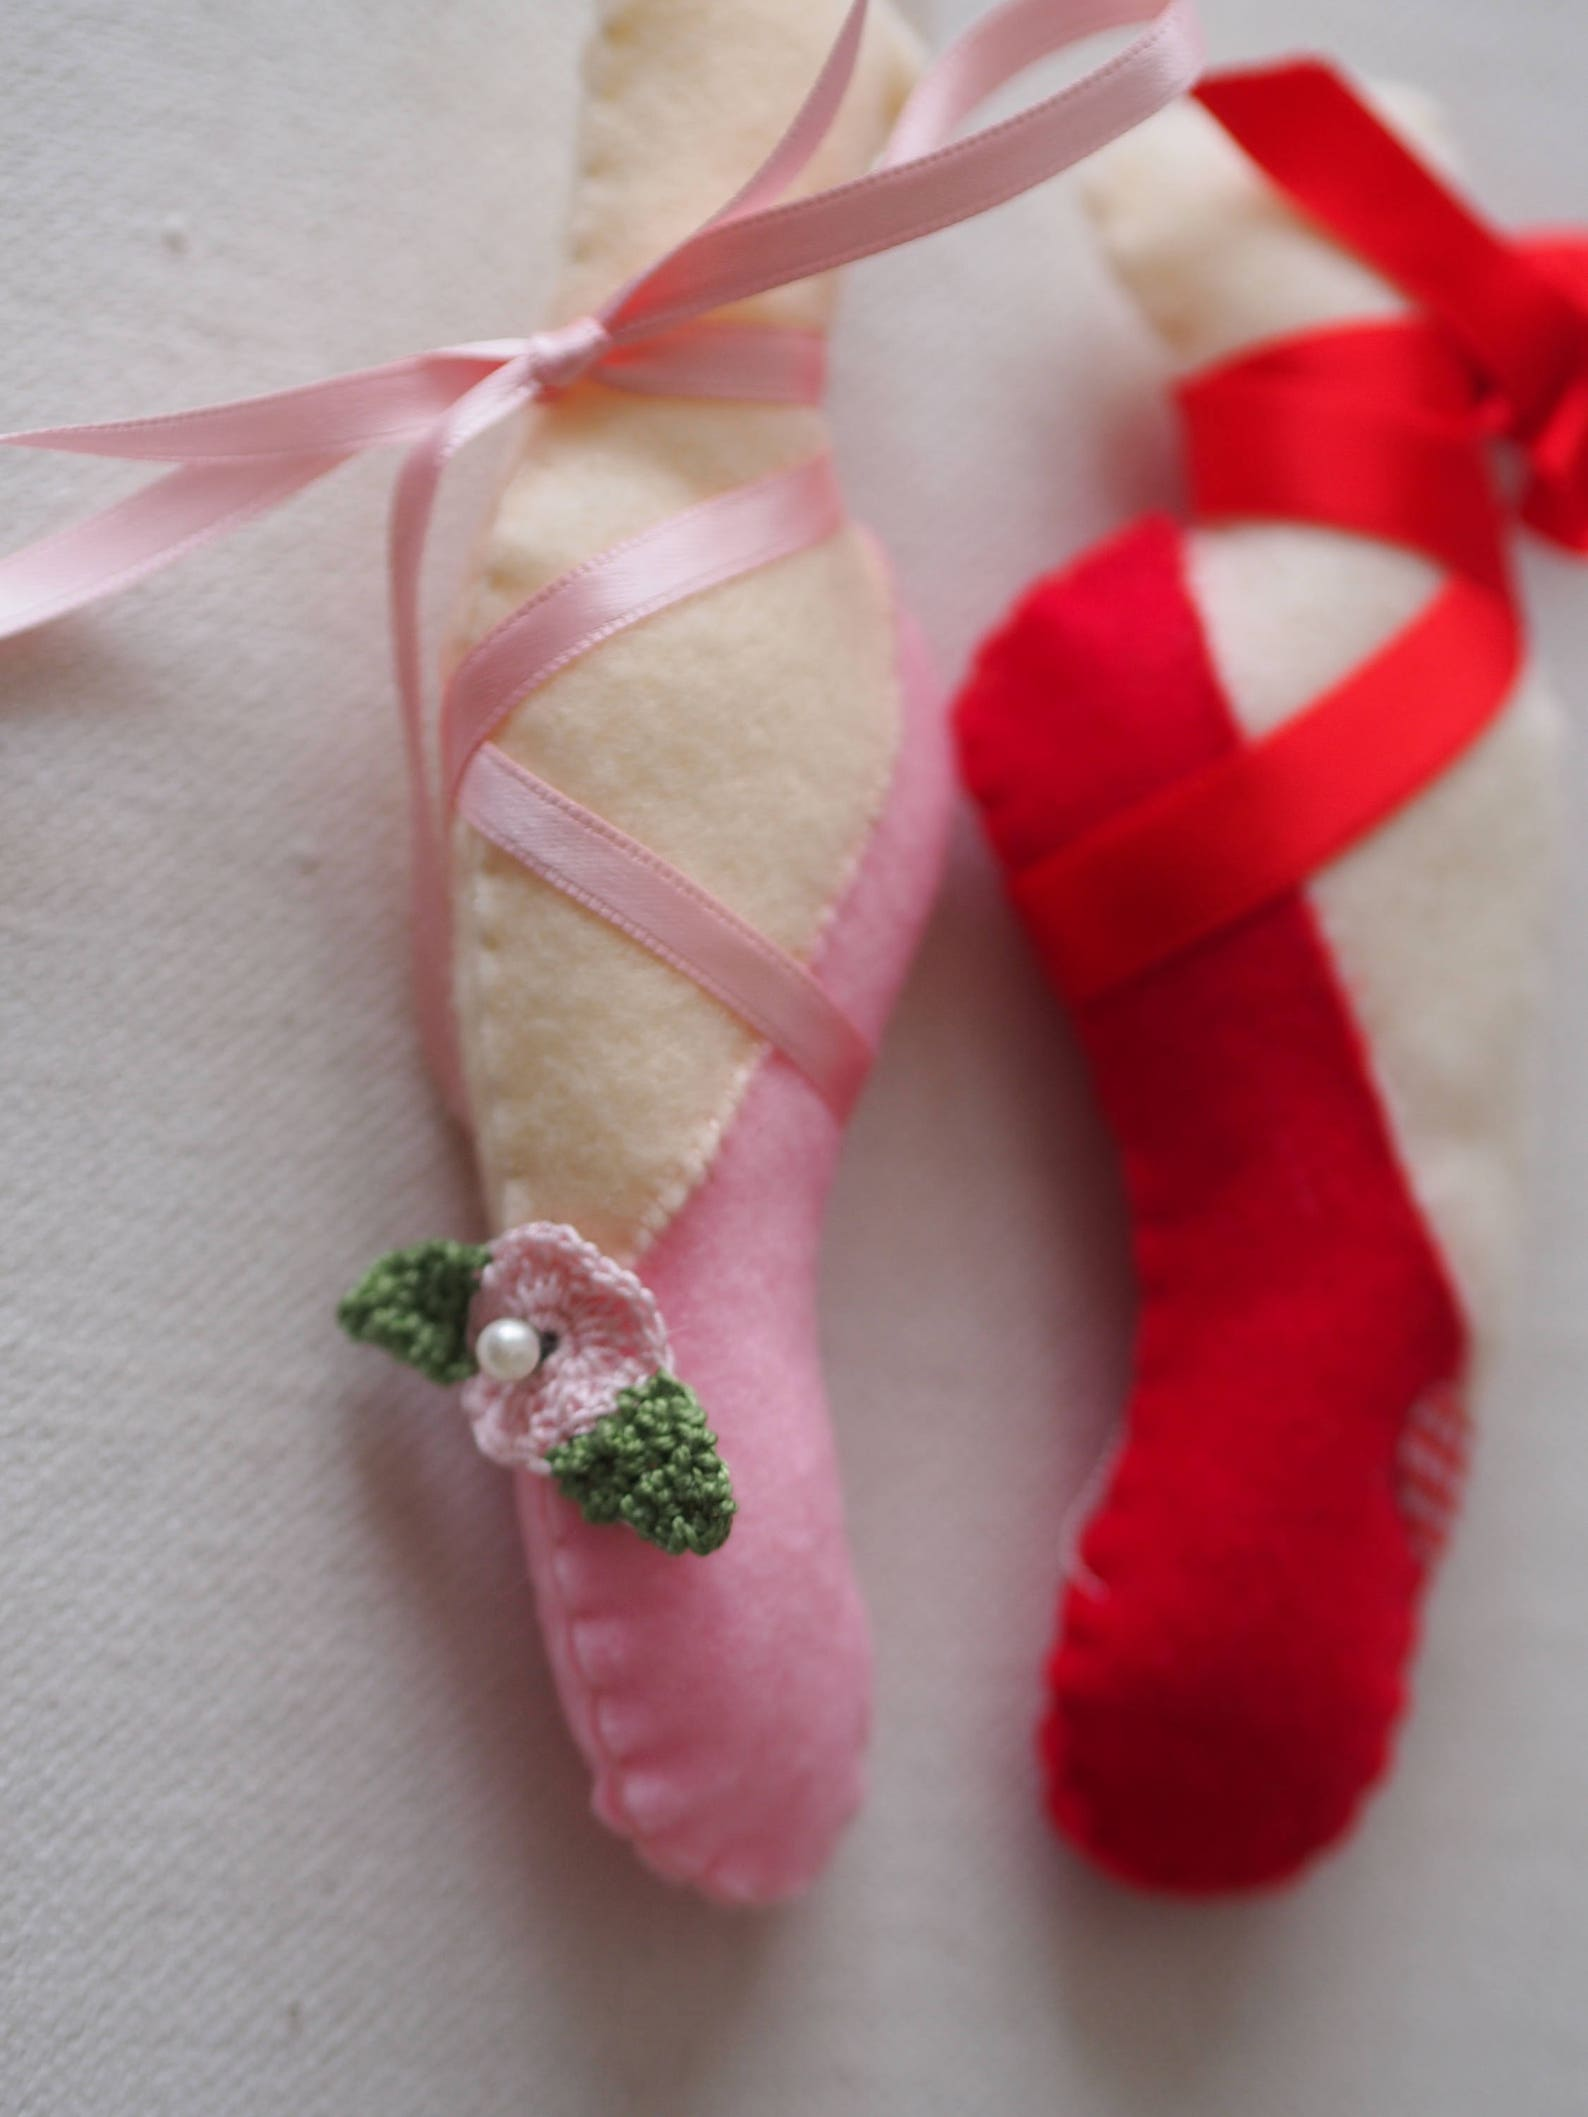 ballet shoe. pink felt. hand made.silk ribbons,crochet flower.party favor,ornament to a gift,cabinet,toy,pin cushion.valentine&#